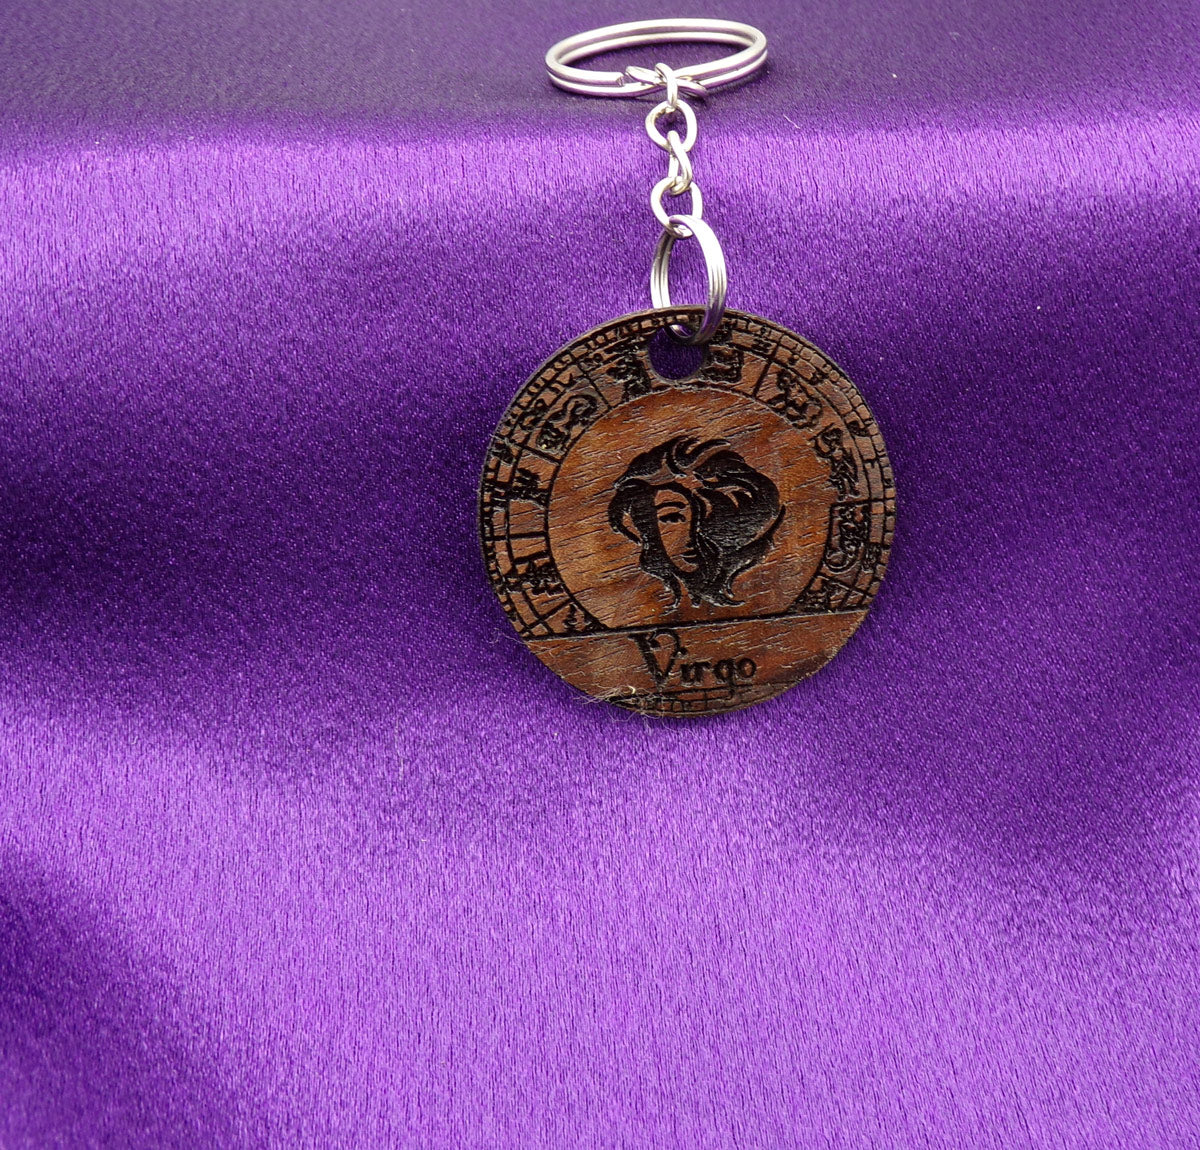 Virgo Key chain - Walnut